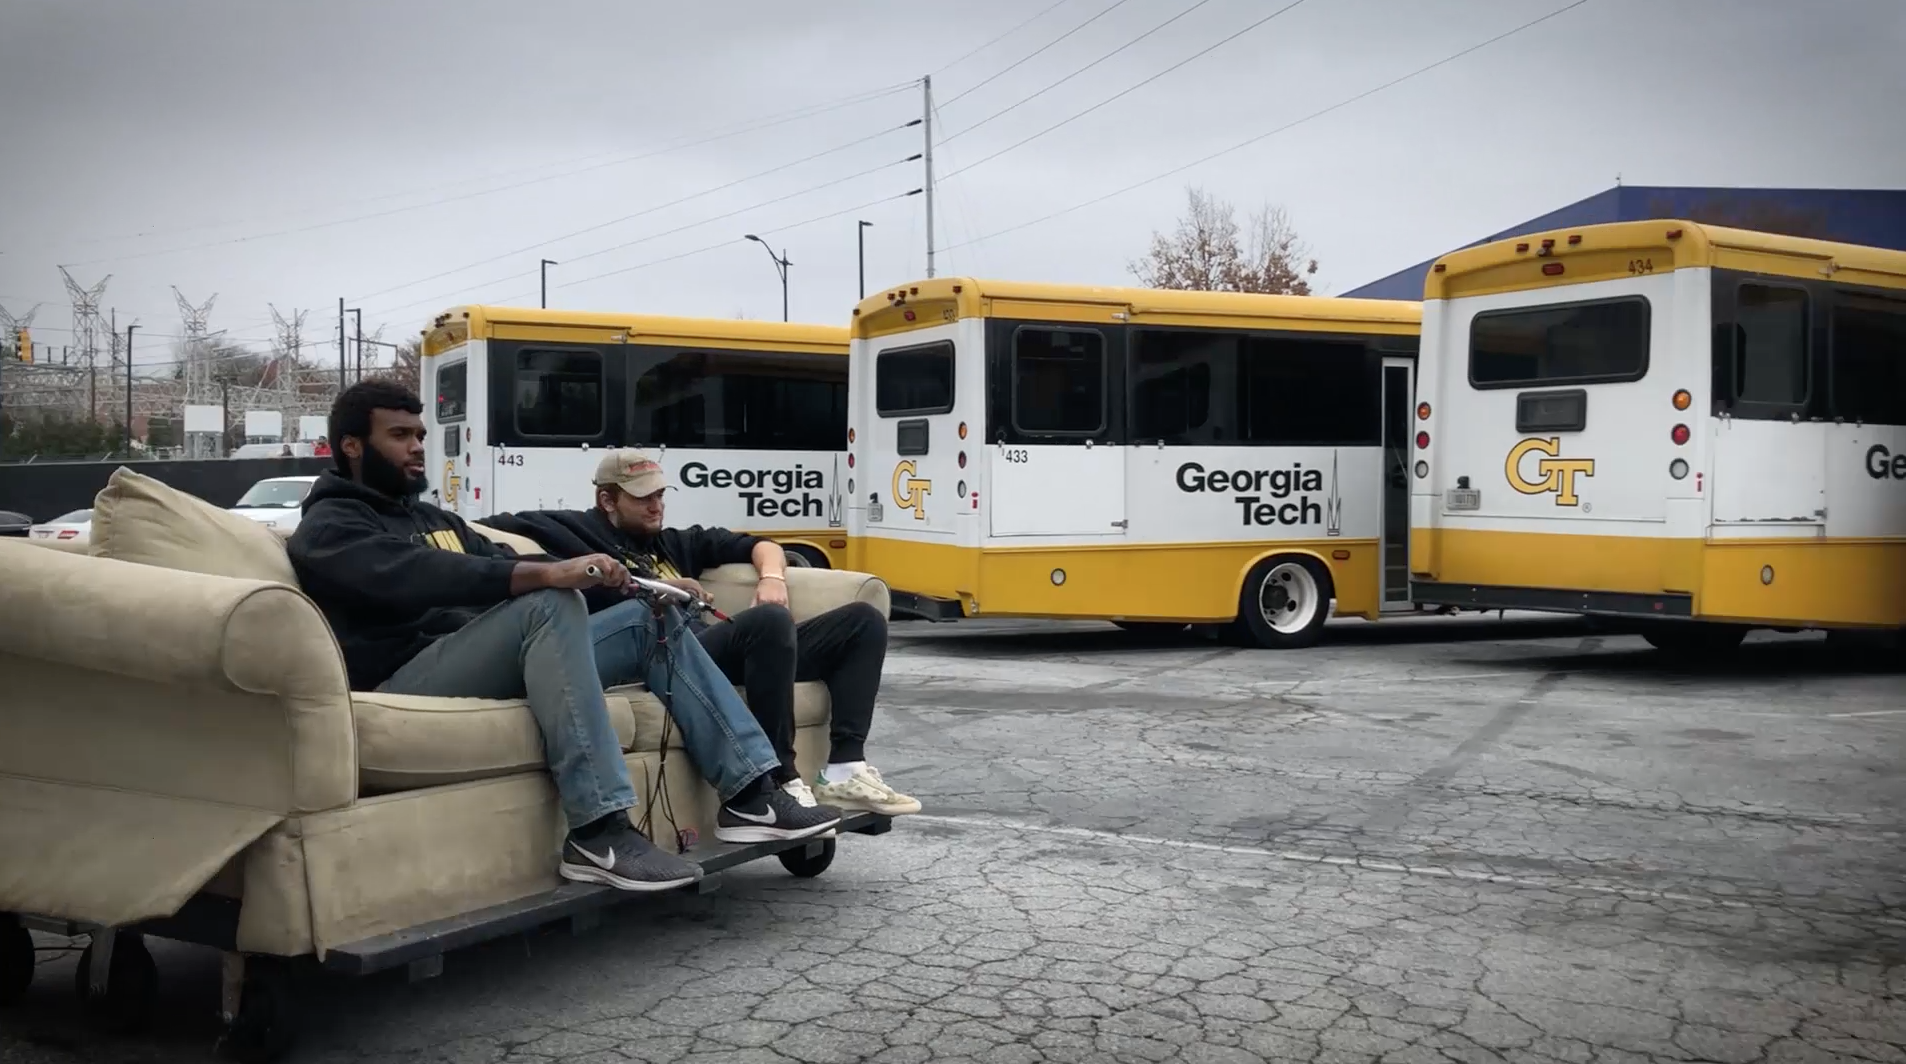 After receiving a bunch of decommissioned electric scooter parts from Lime, team members from Georgia Tech's Wreck Racing used the parts to build a couch they can drive around. (It's pretty incredible.)